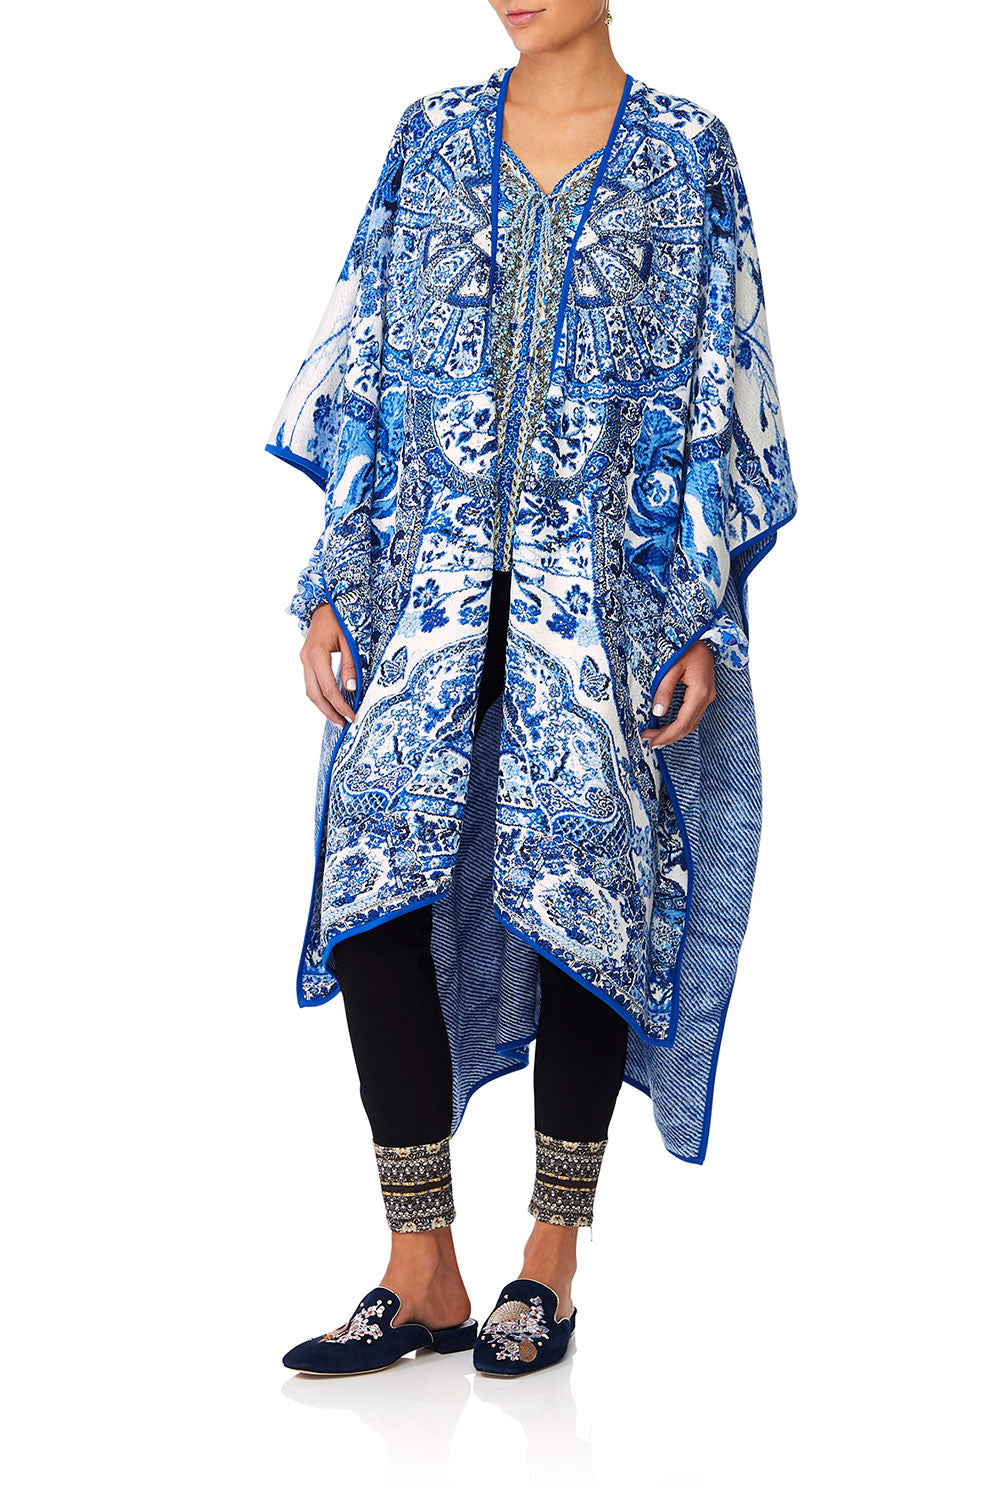 CAMILLA ETERNITYS EMPIRE OVERSIZED THROWOVER PONCHO